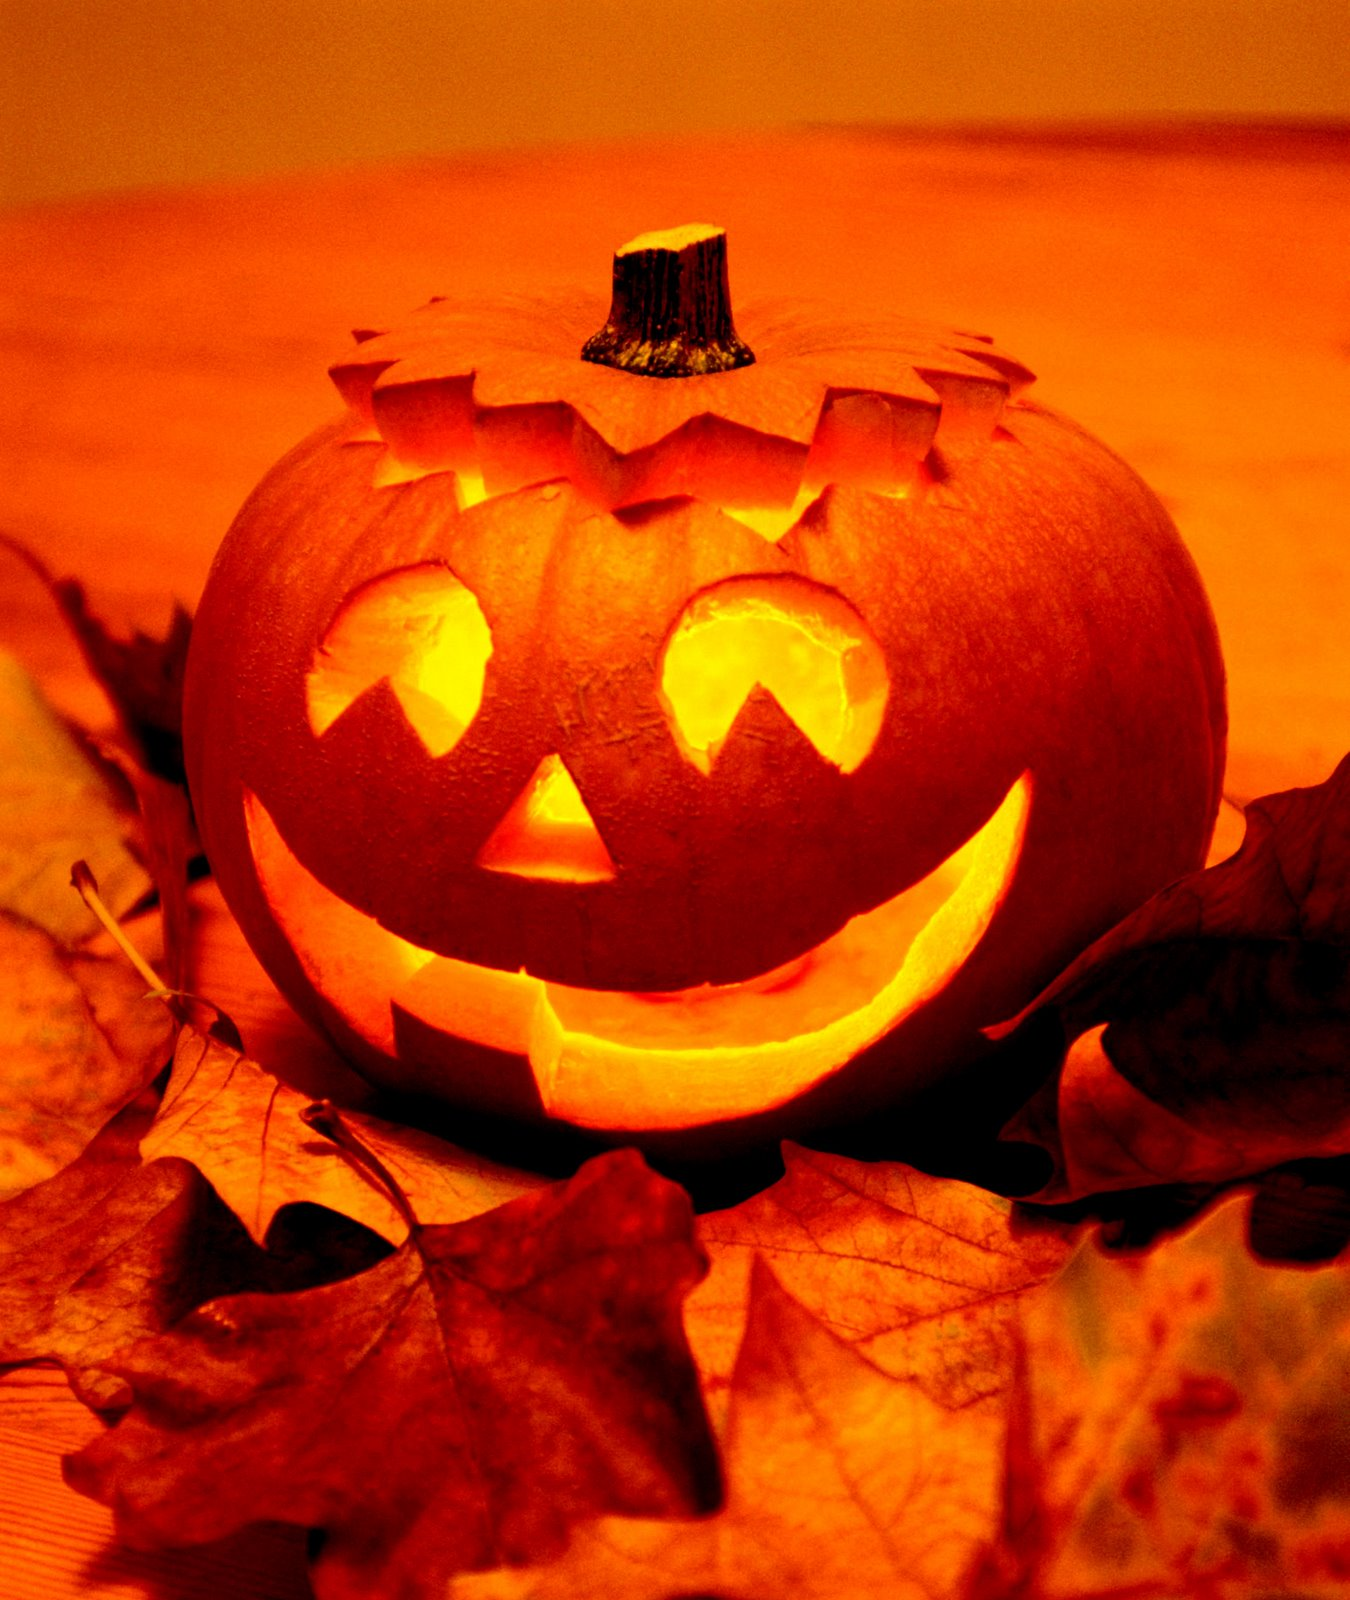 Pumpkin Carving Decorating Ideas PLUS Find Pumpkins Locally